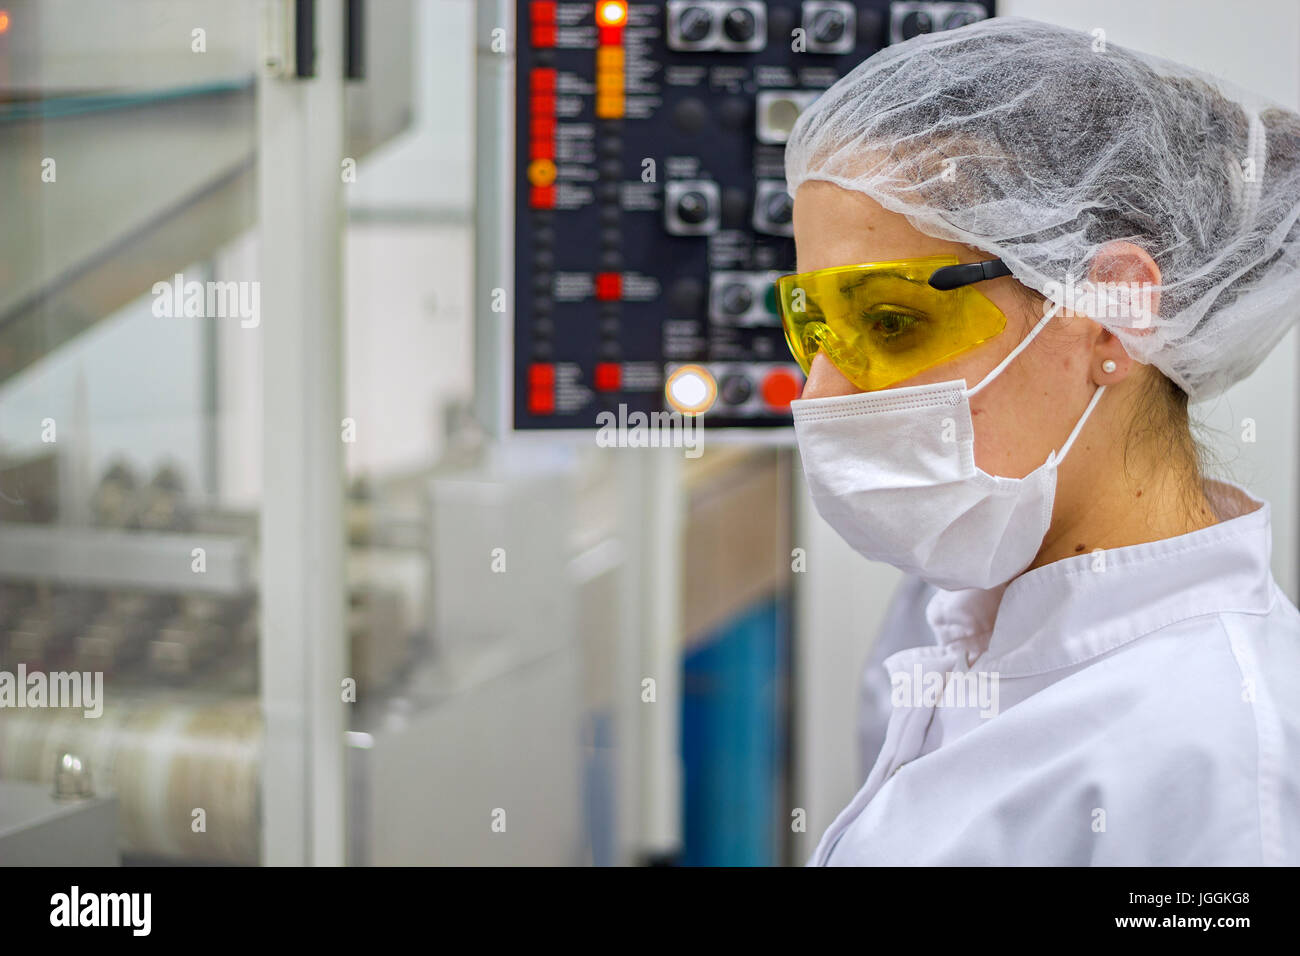 Pharmaceutical technician using the control panel of pill packaging machine.  Pharmaceutical industry. - Stock Image